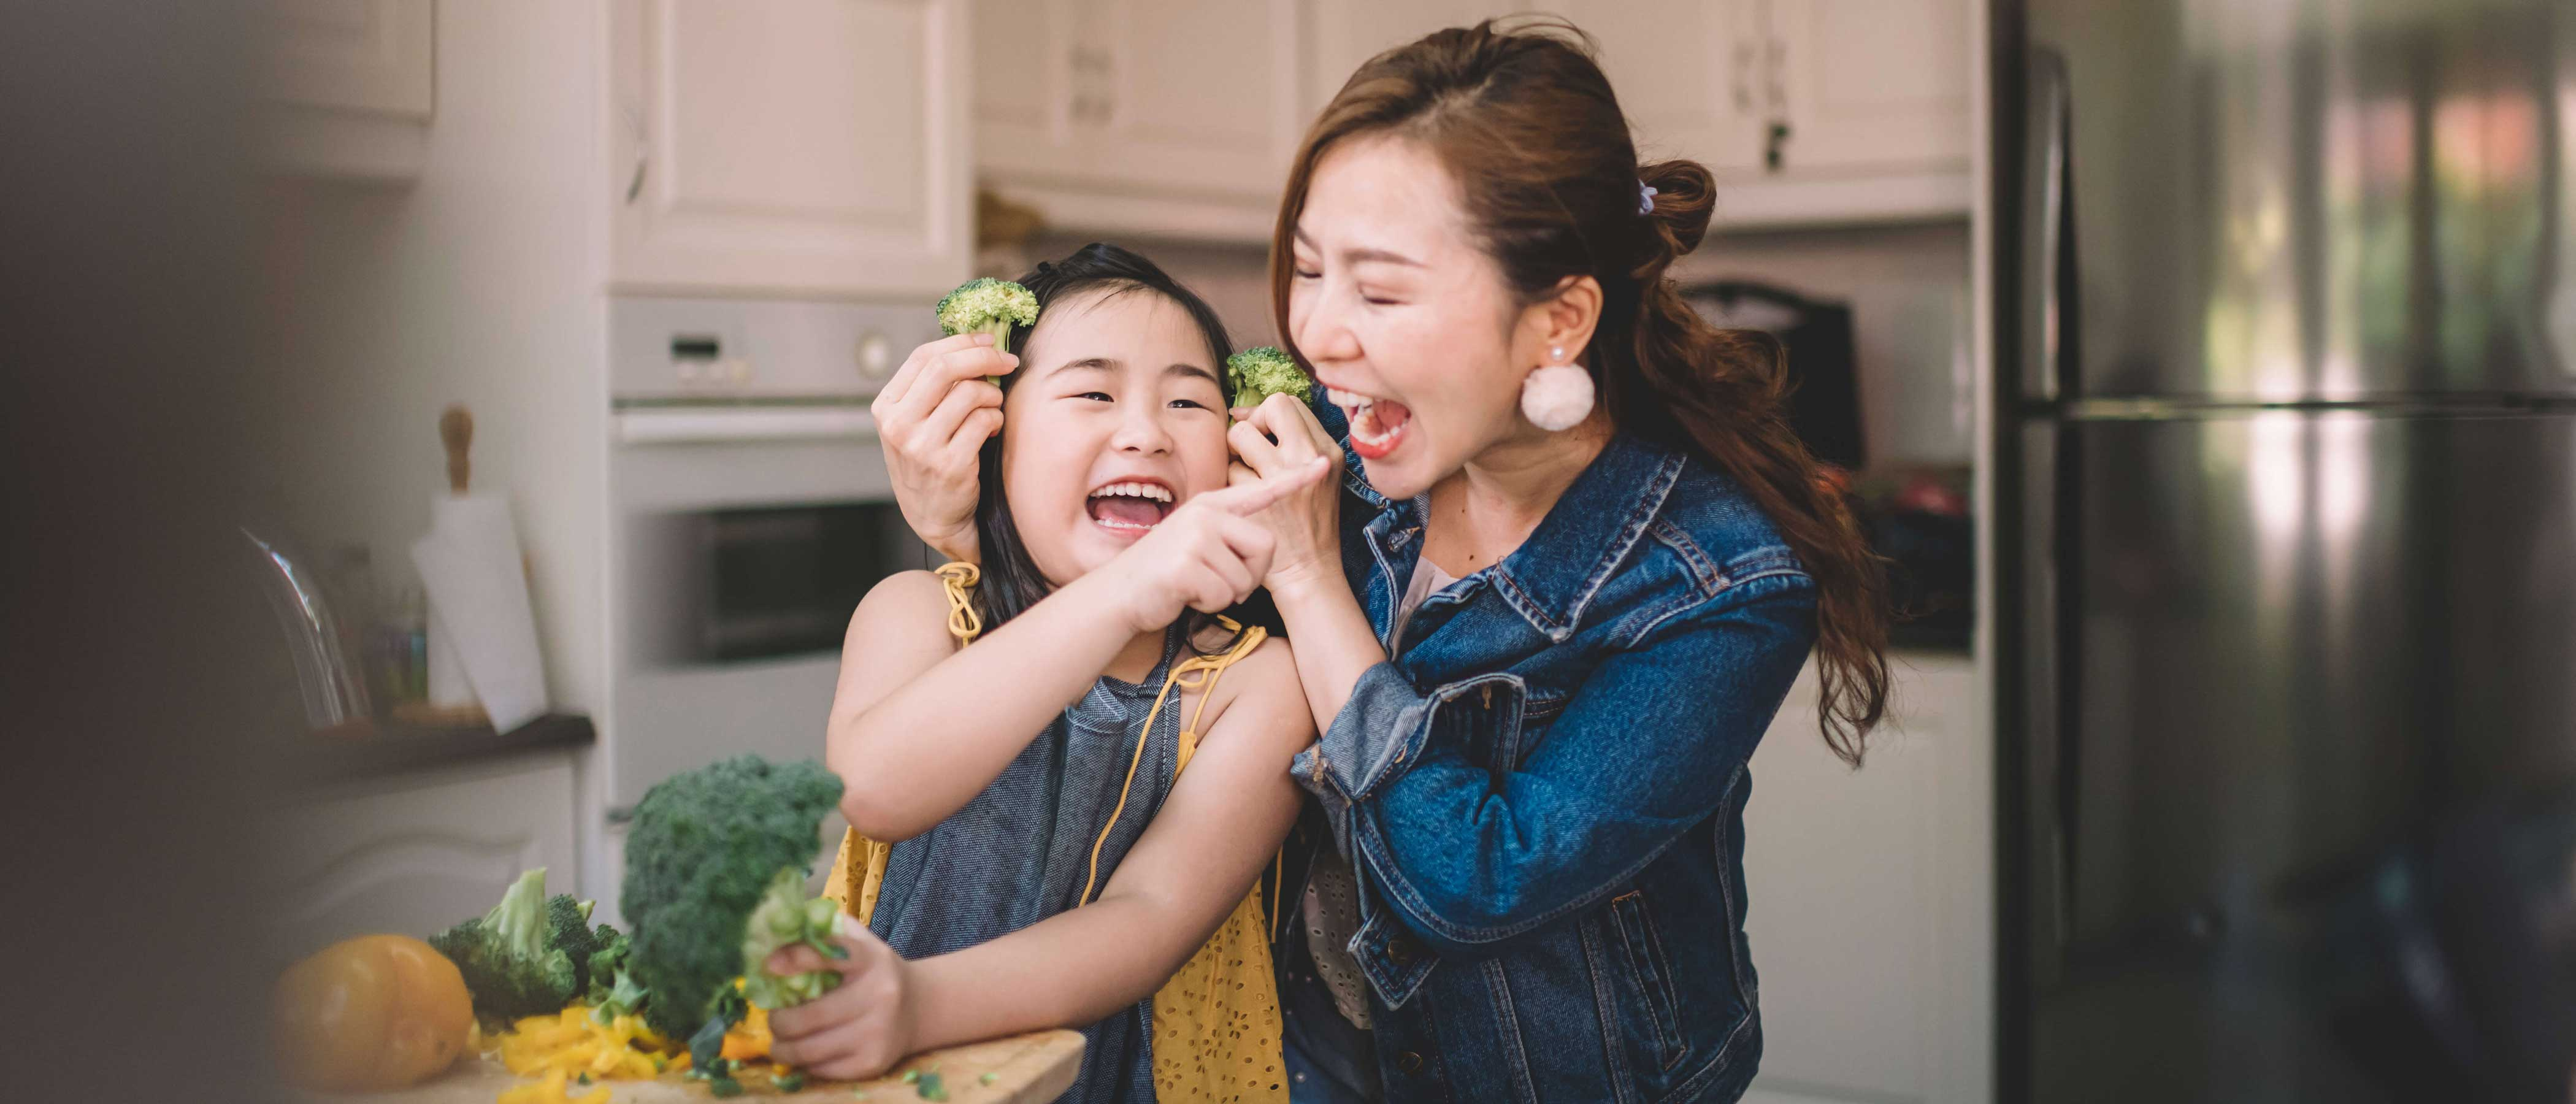 Mother and daughter in kitchen having fun while preparing food